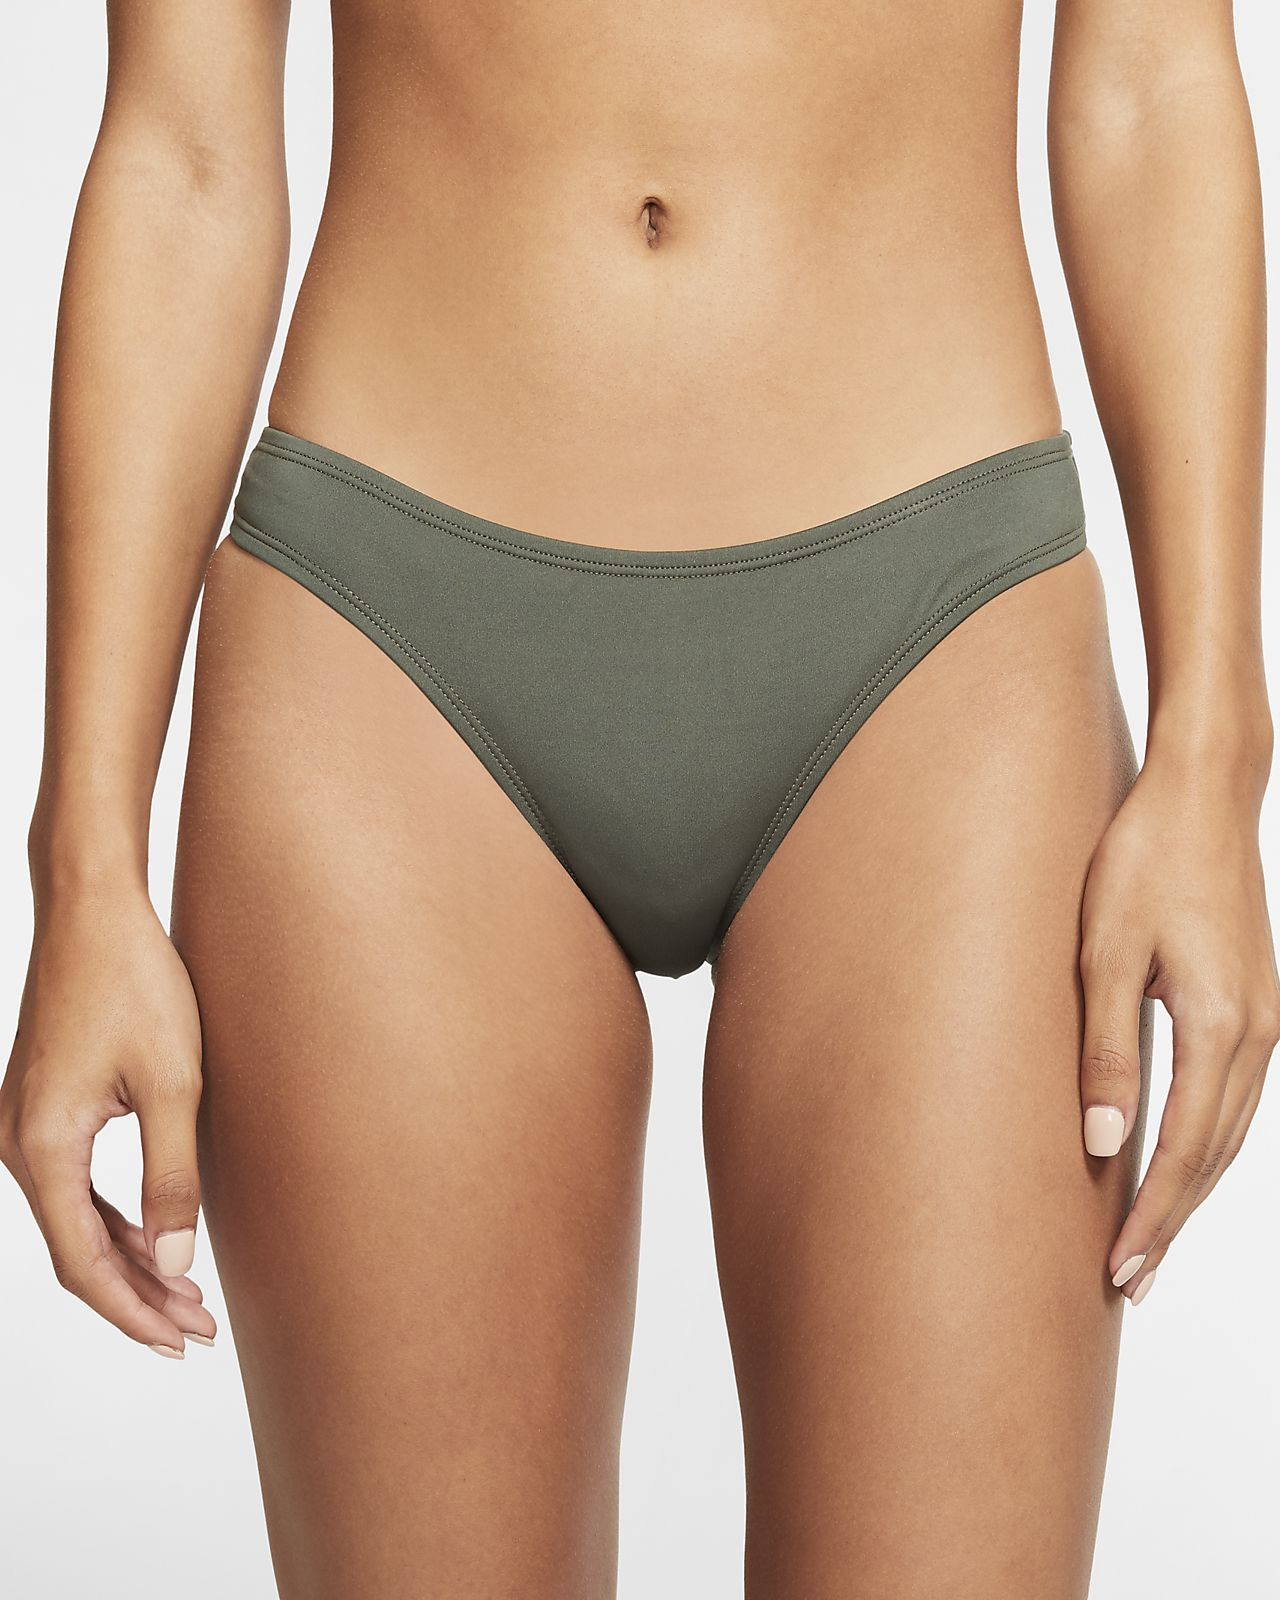 Nike Essential Women's Cheeky Swim Bottoms